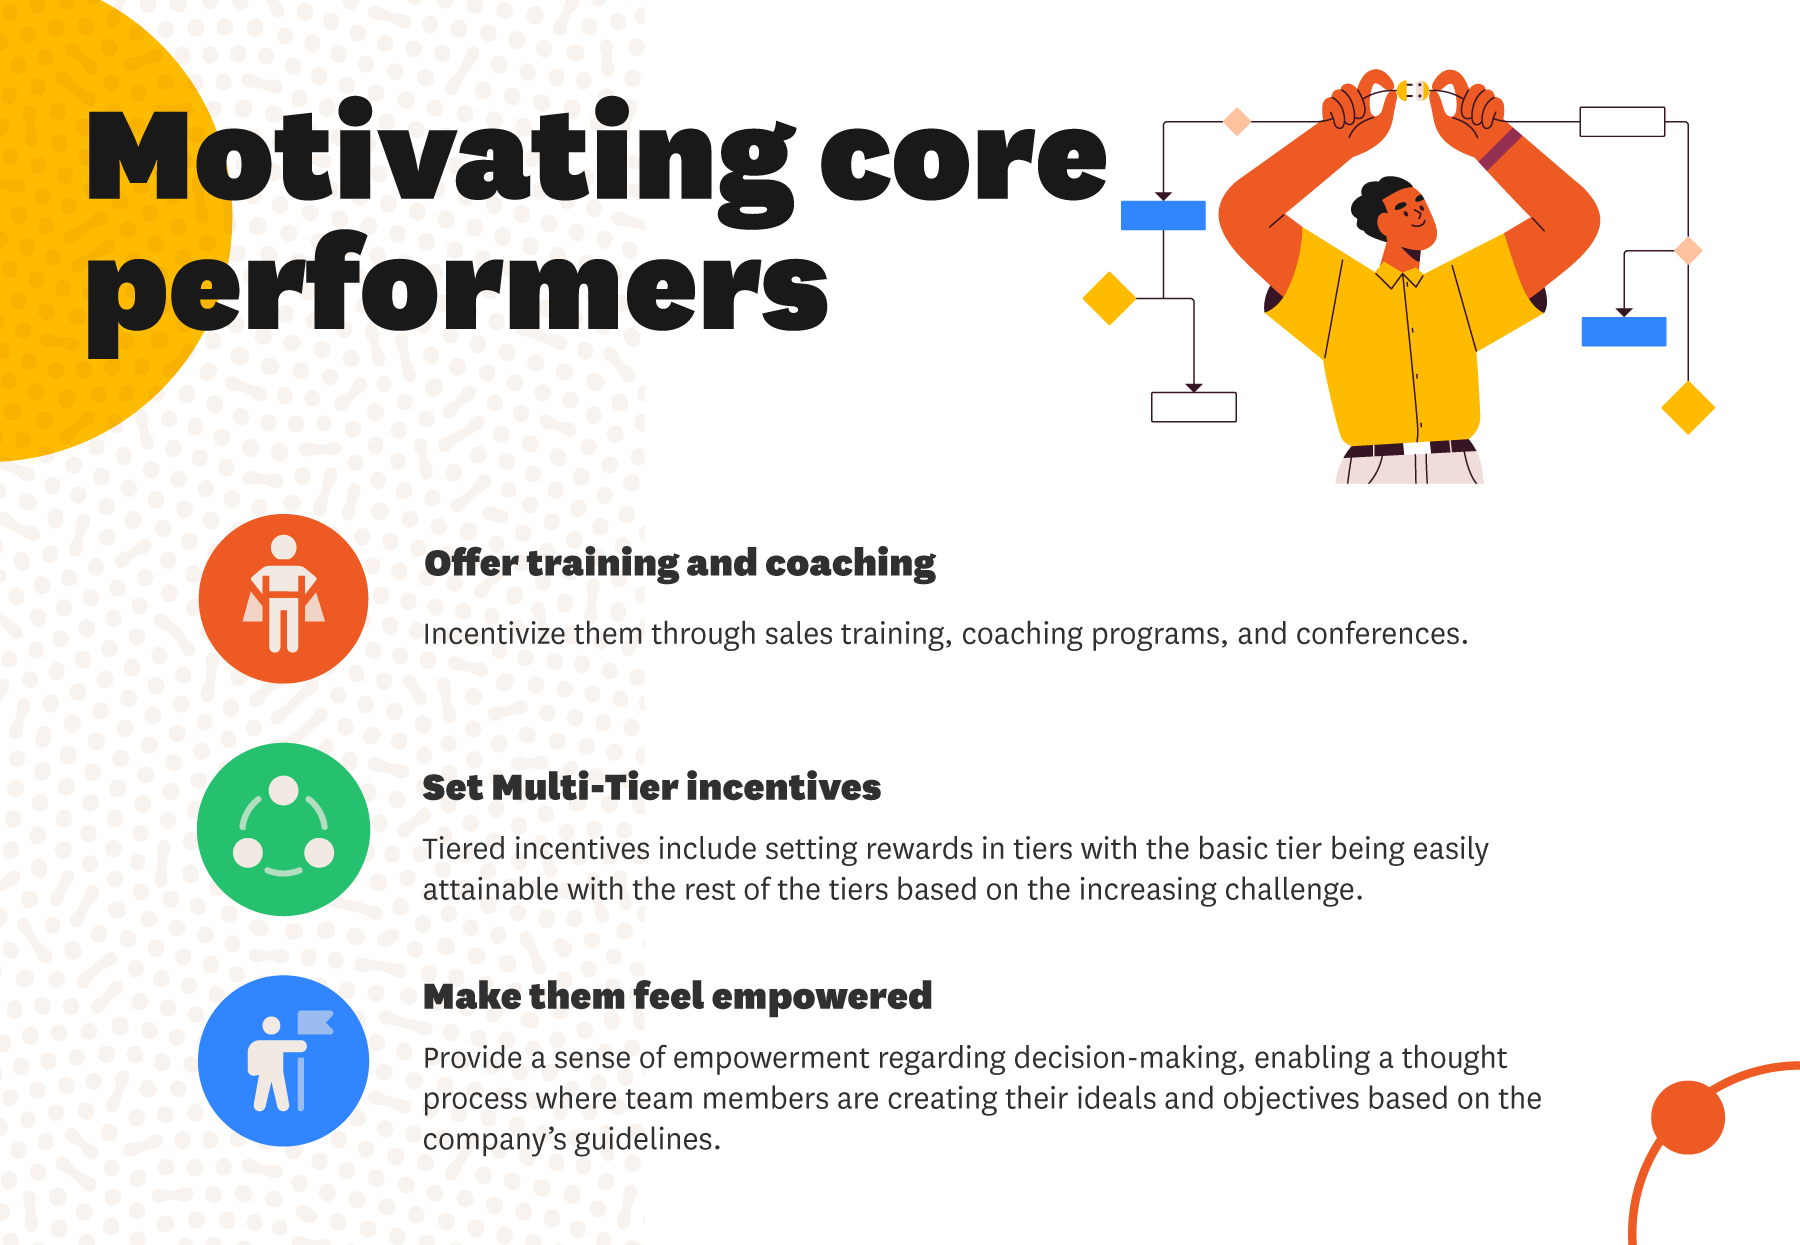 Motivating Core Performers